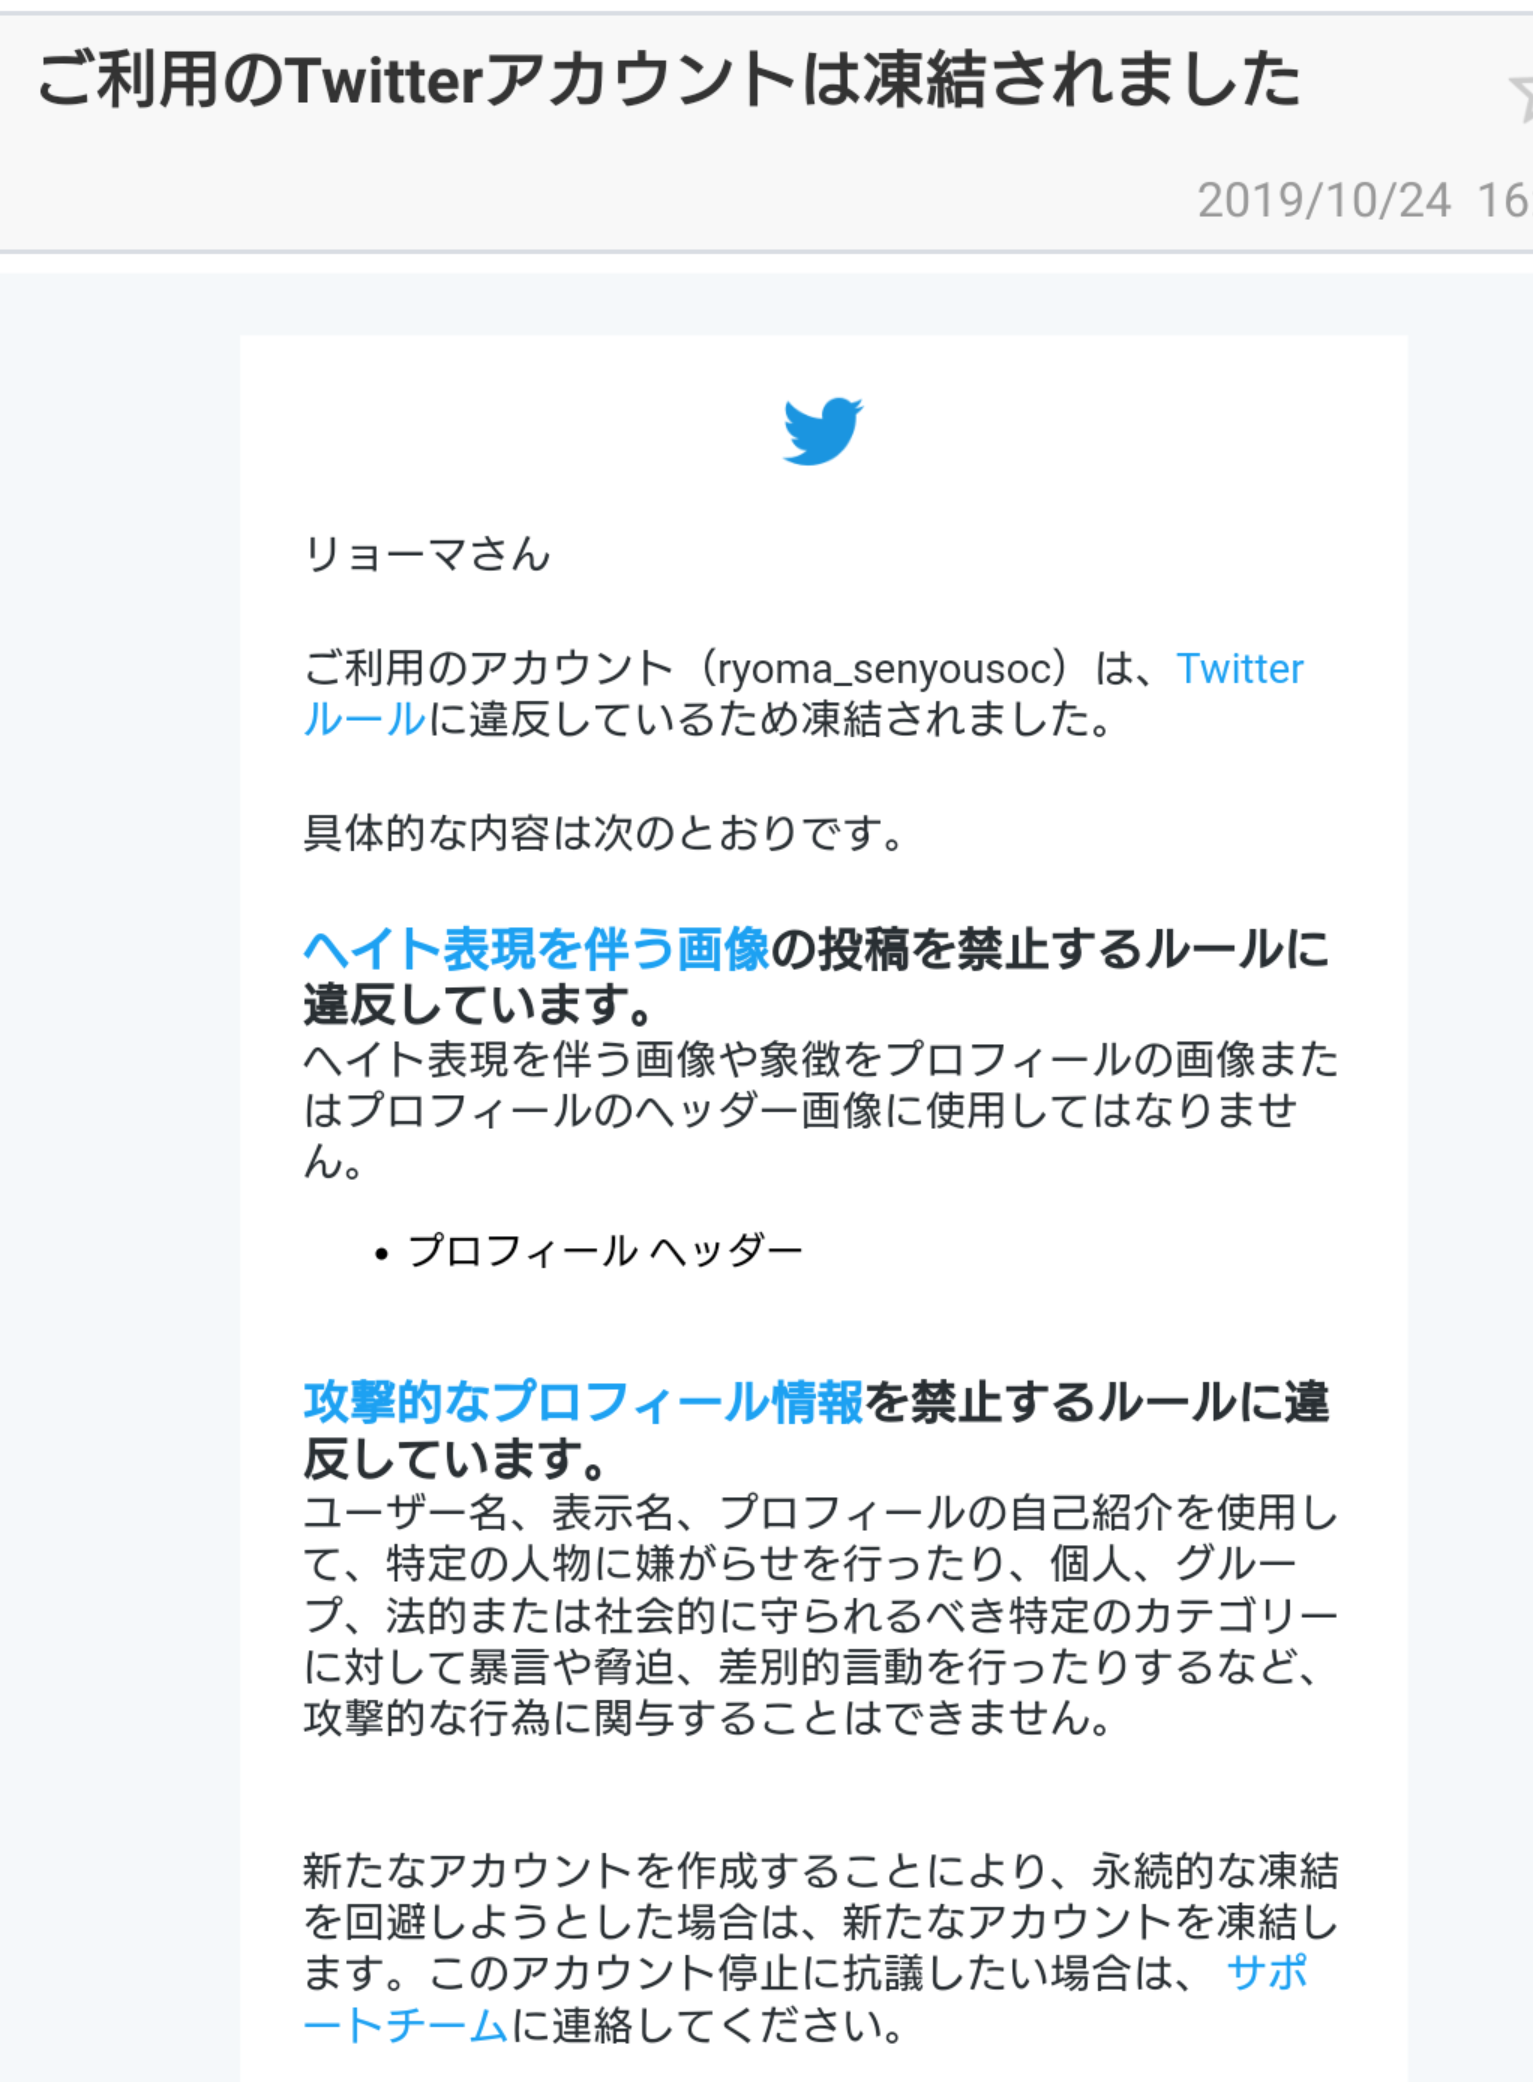 Screenshot_20191024-165629.png